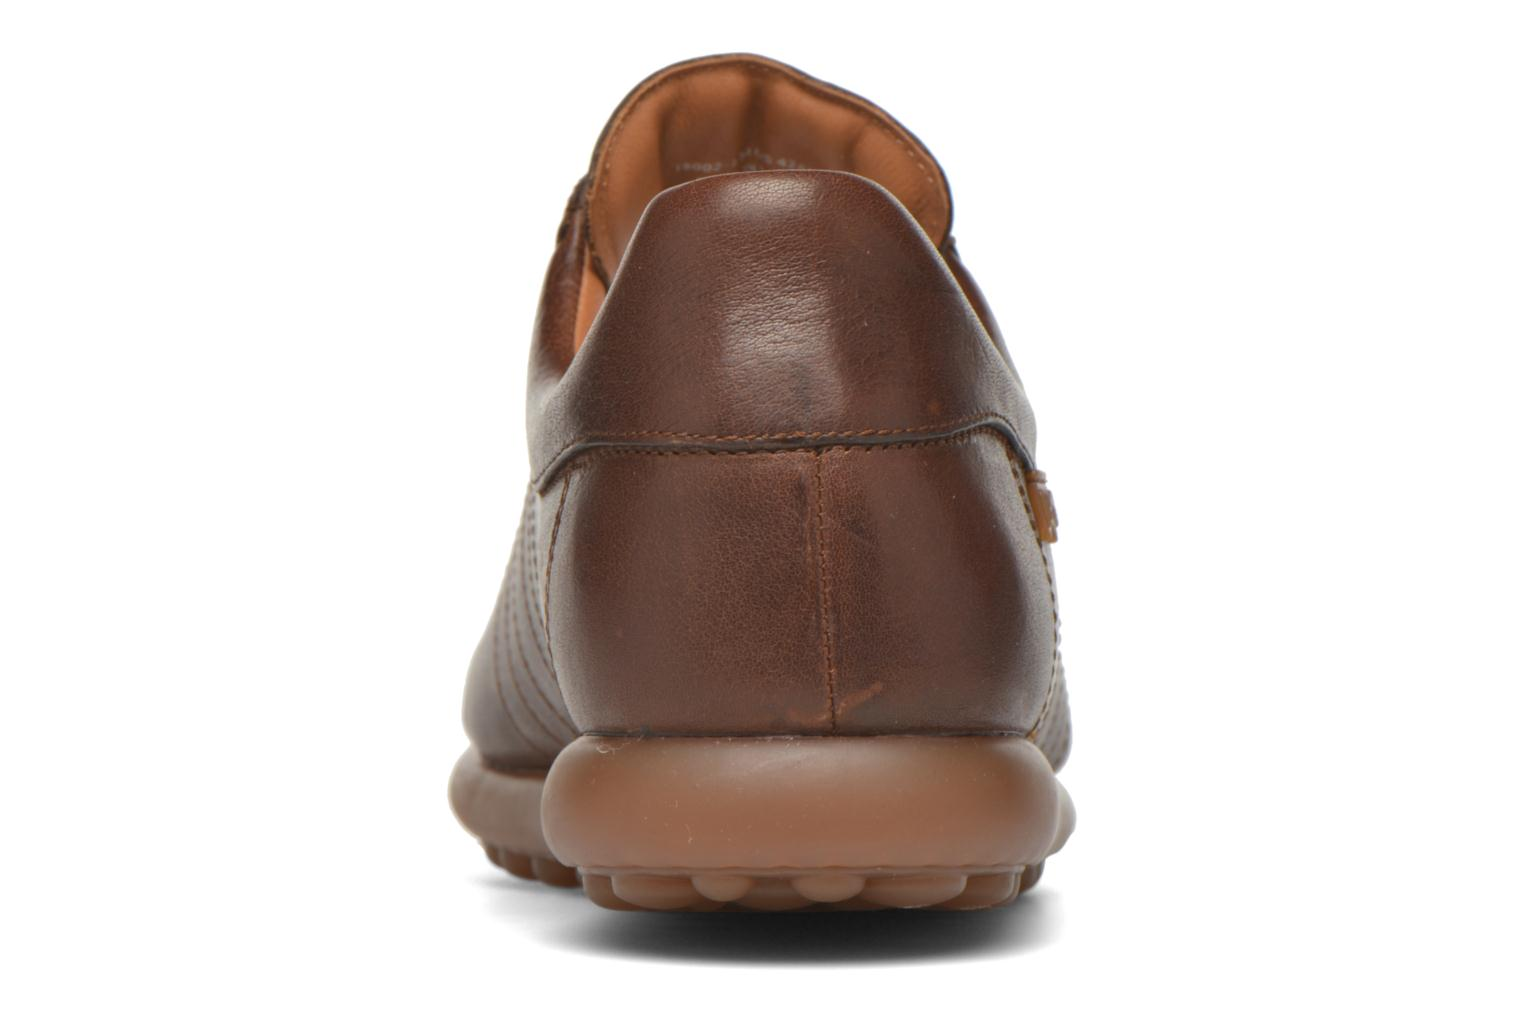 Pelotas Ariel 16002 Medium Brown